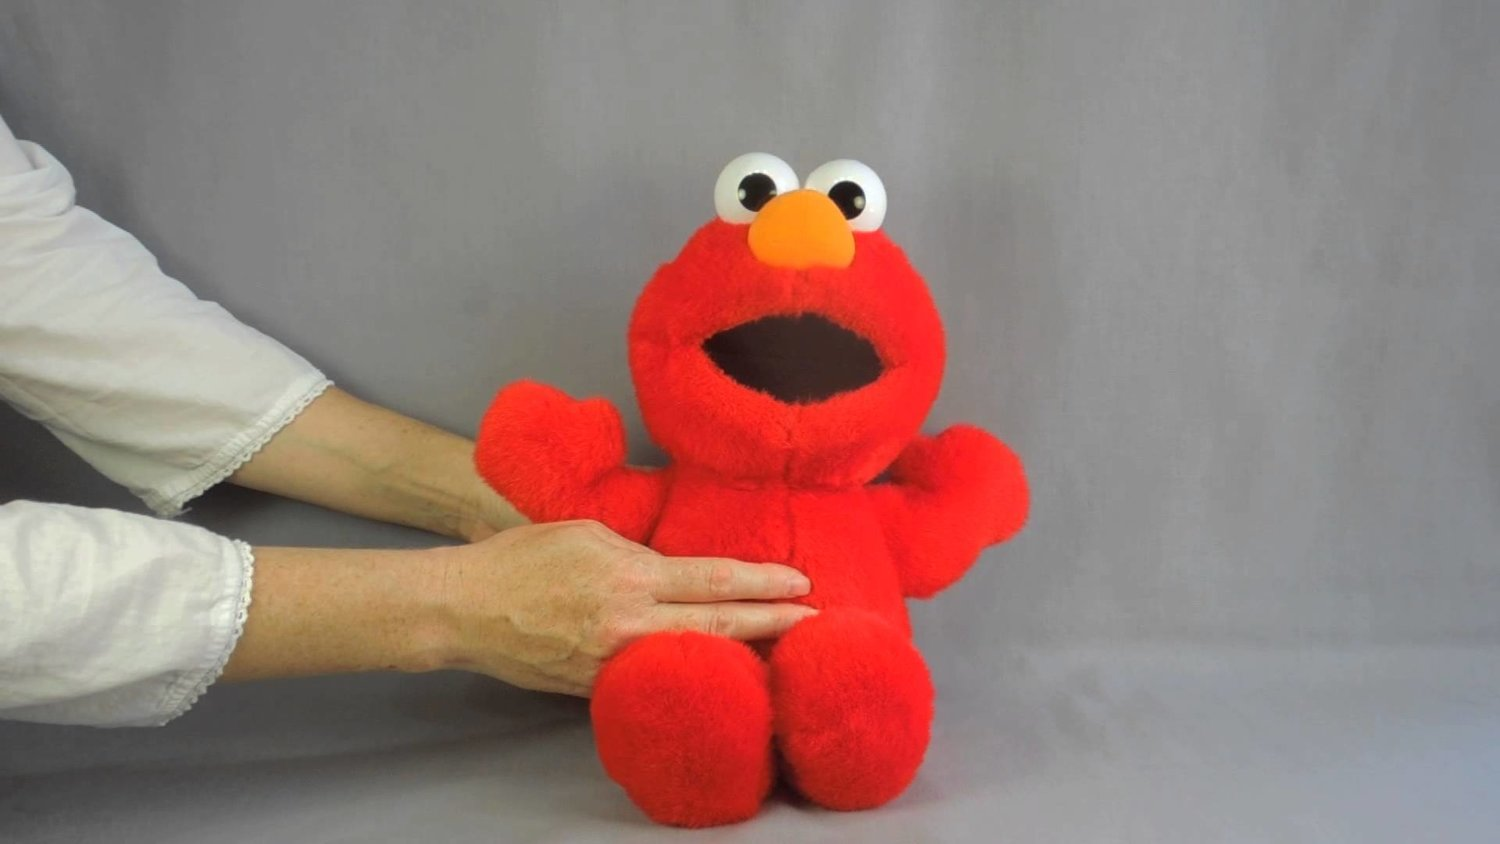 Watching A Furless TICKLE ME ELMO In Action Is A Real Life Nightmare